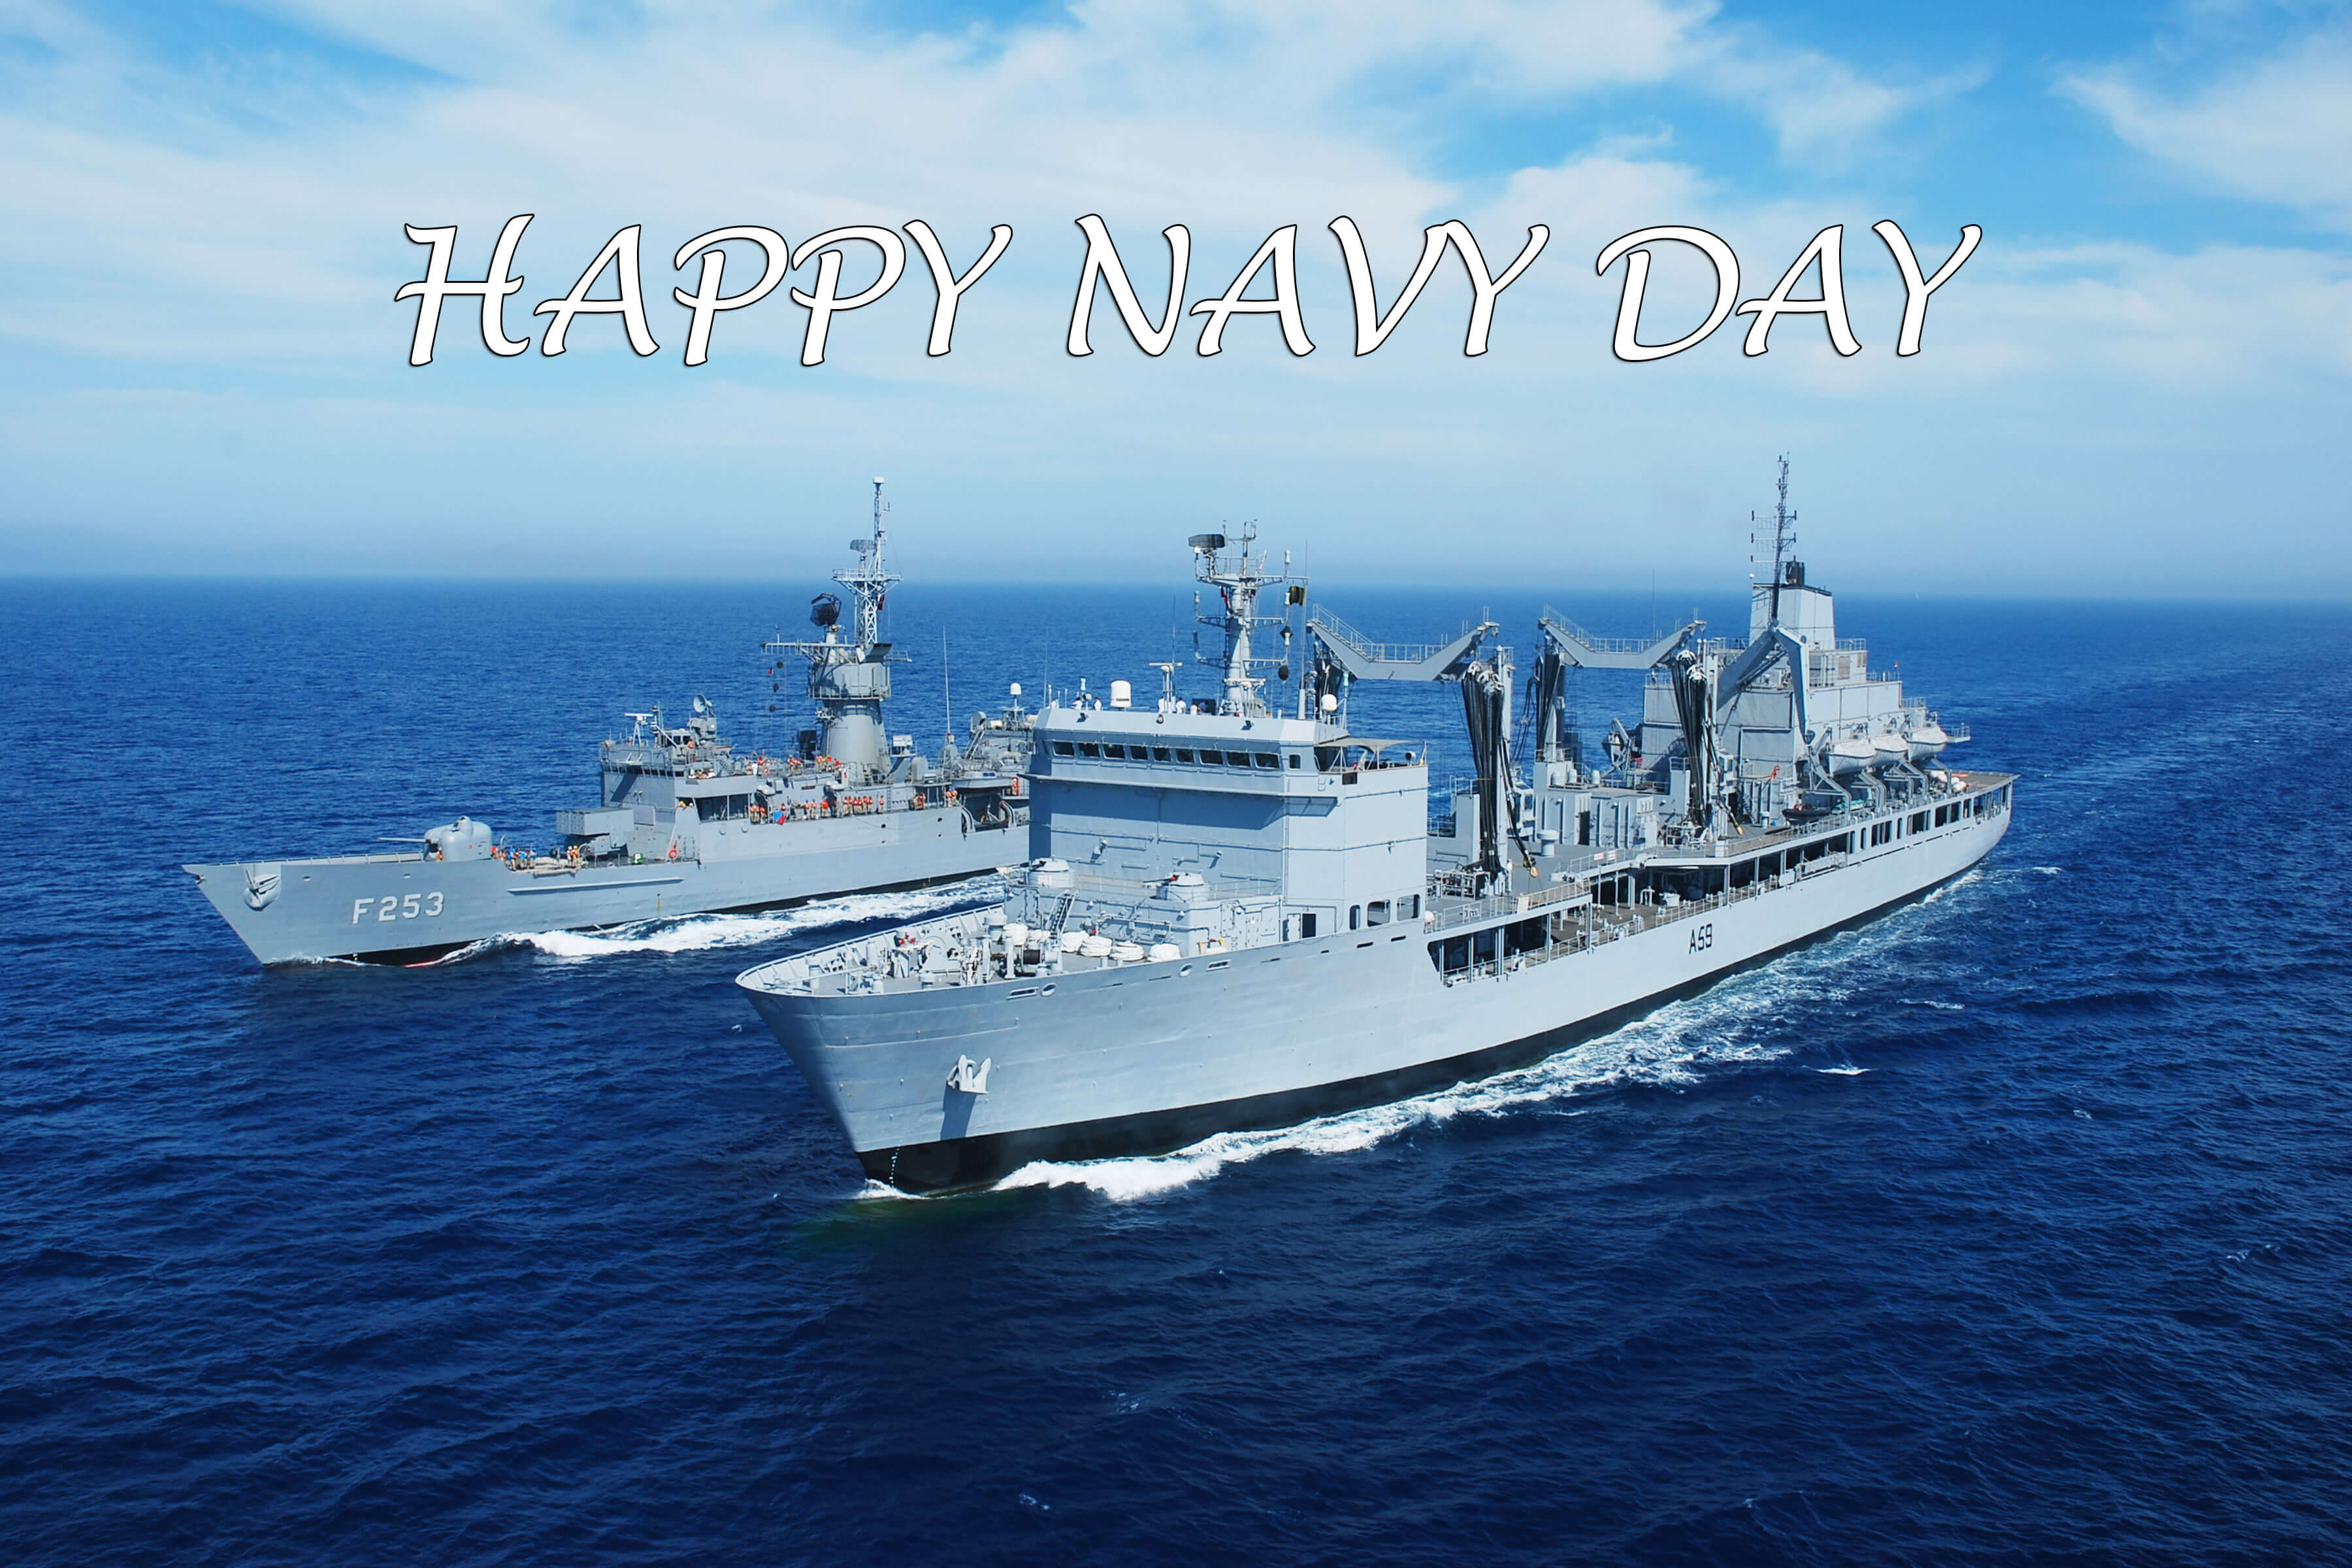 happy navy day cruise ships greetings wishes hd wallpaper